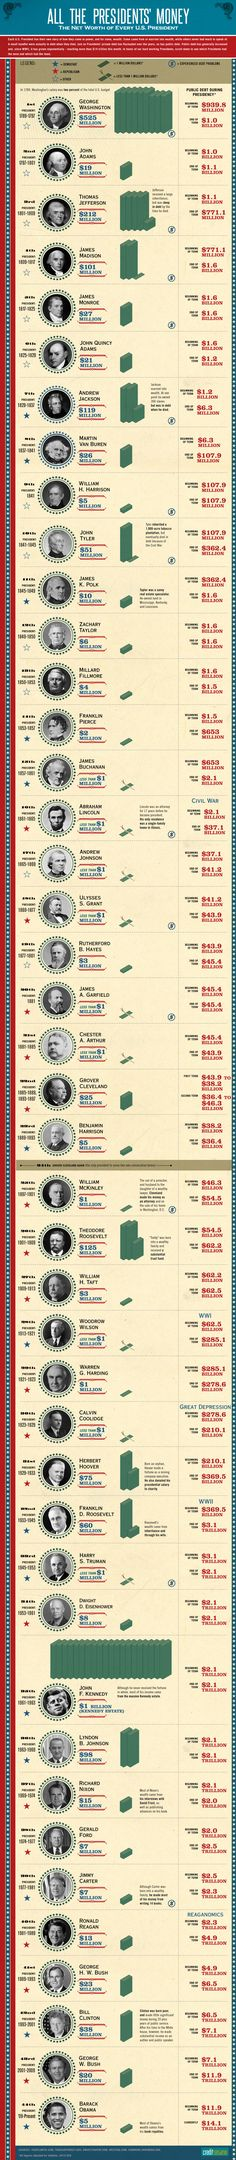 All U.S. President have their own story of how they came to power, and for some, wealth. Some came from or married into wealth, while others never had much to speak of. A small handful were penniless or poor when they died. Not only has Presidents' private debt fluctuated over the years, so has public